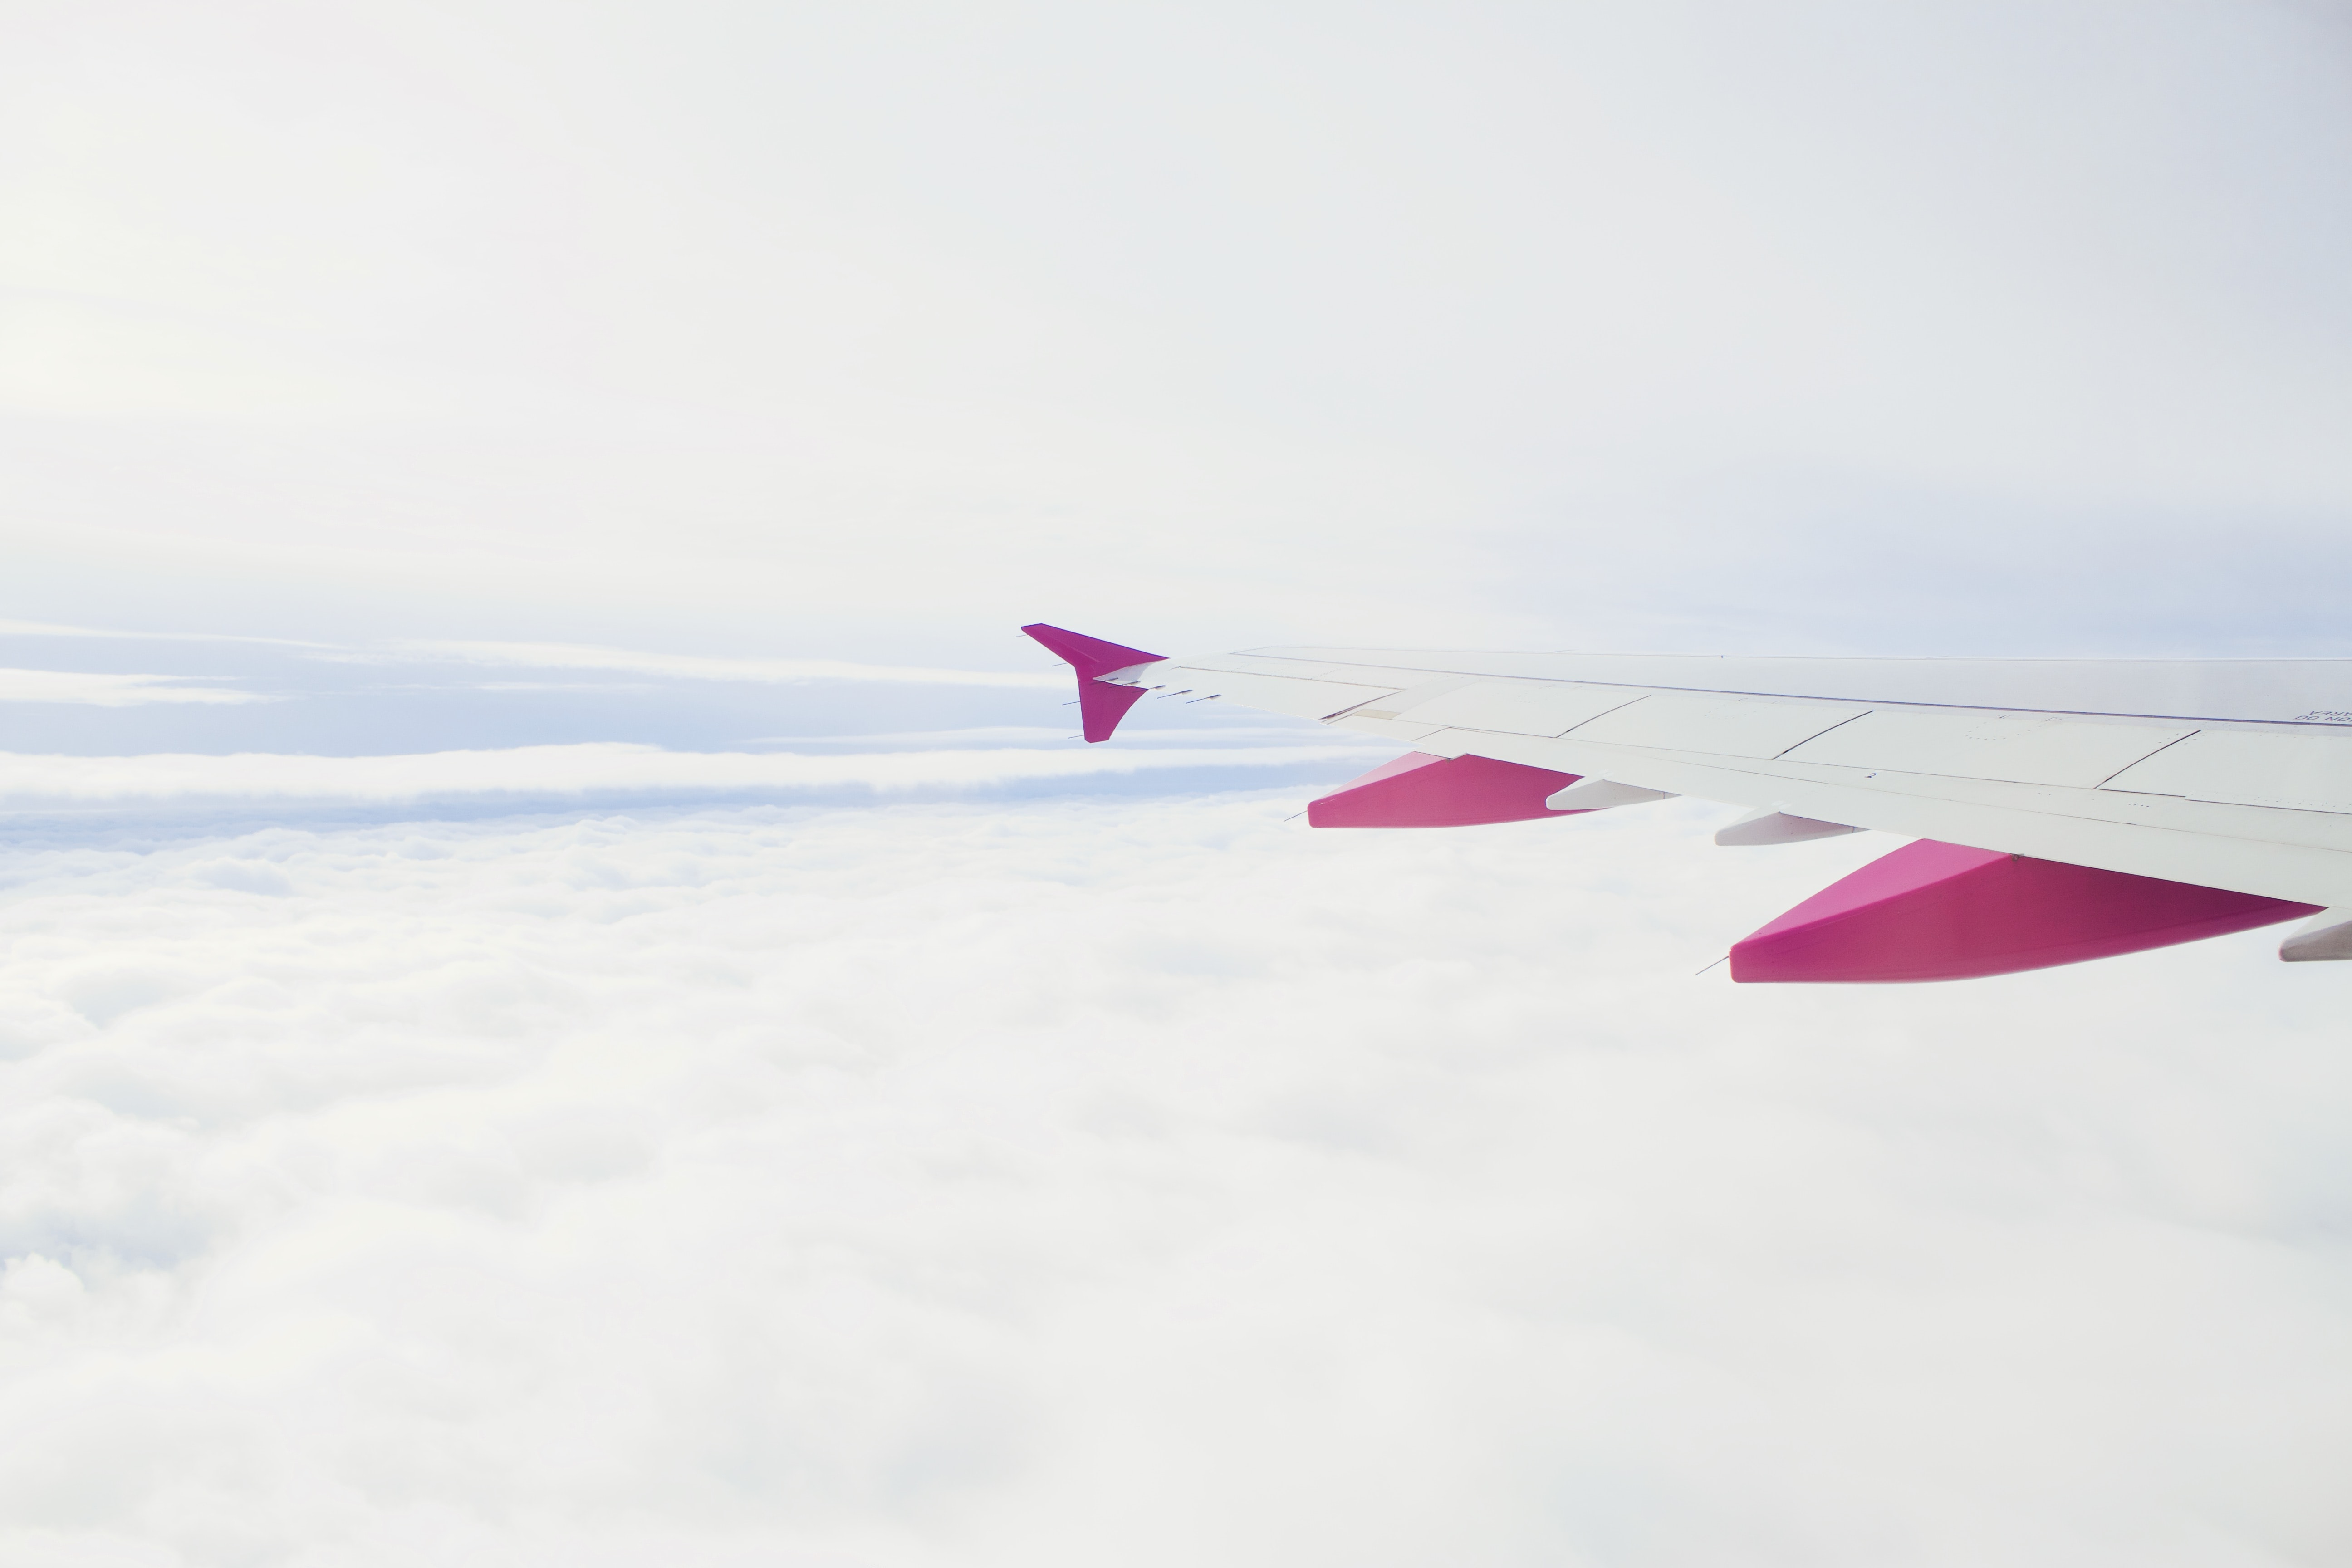 white and pink plane flying during daytime photography